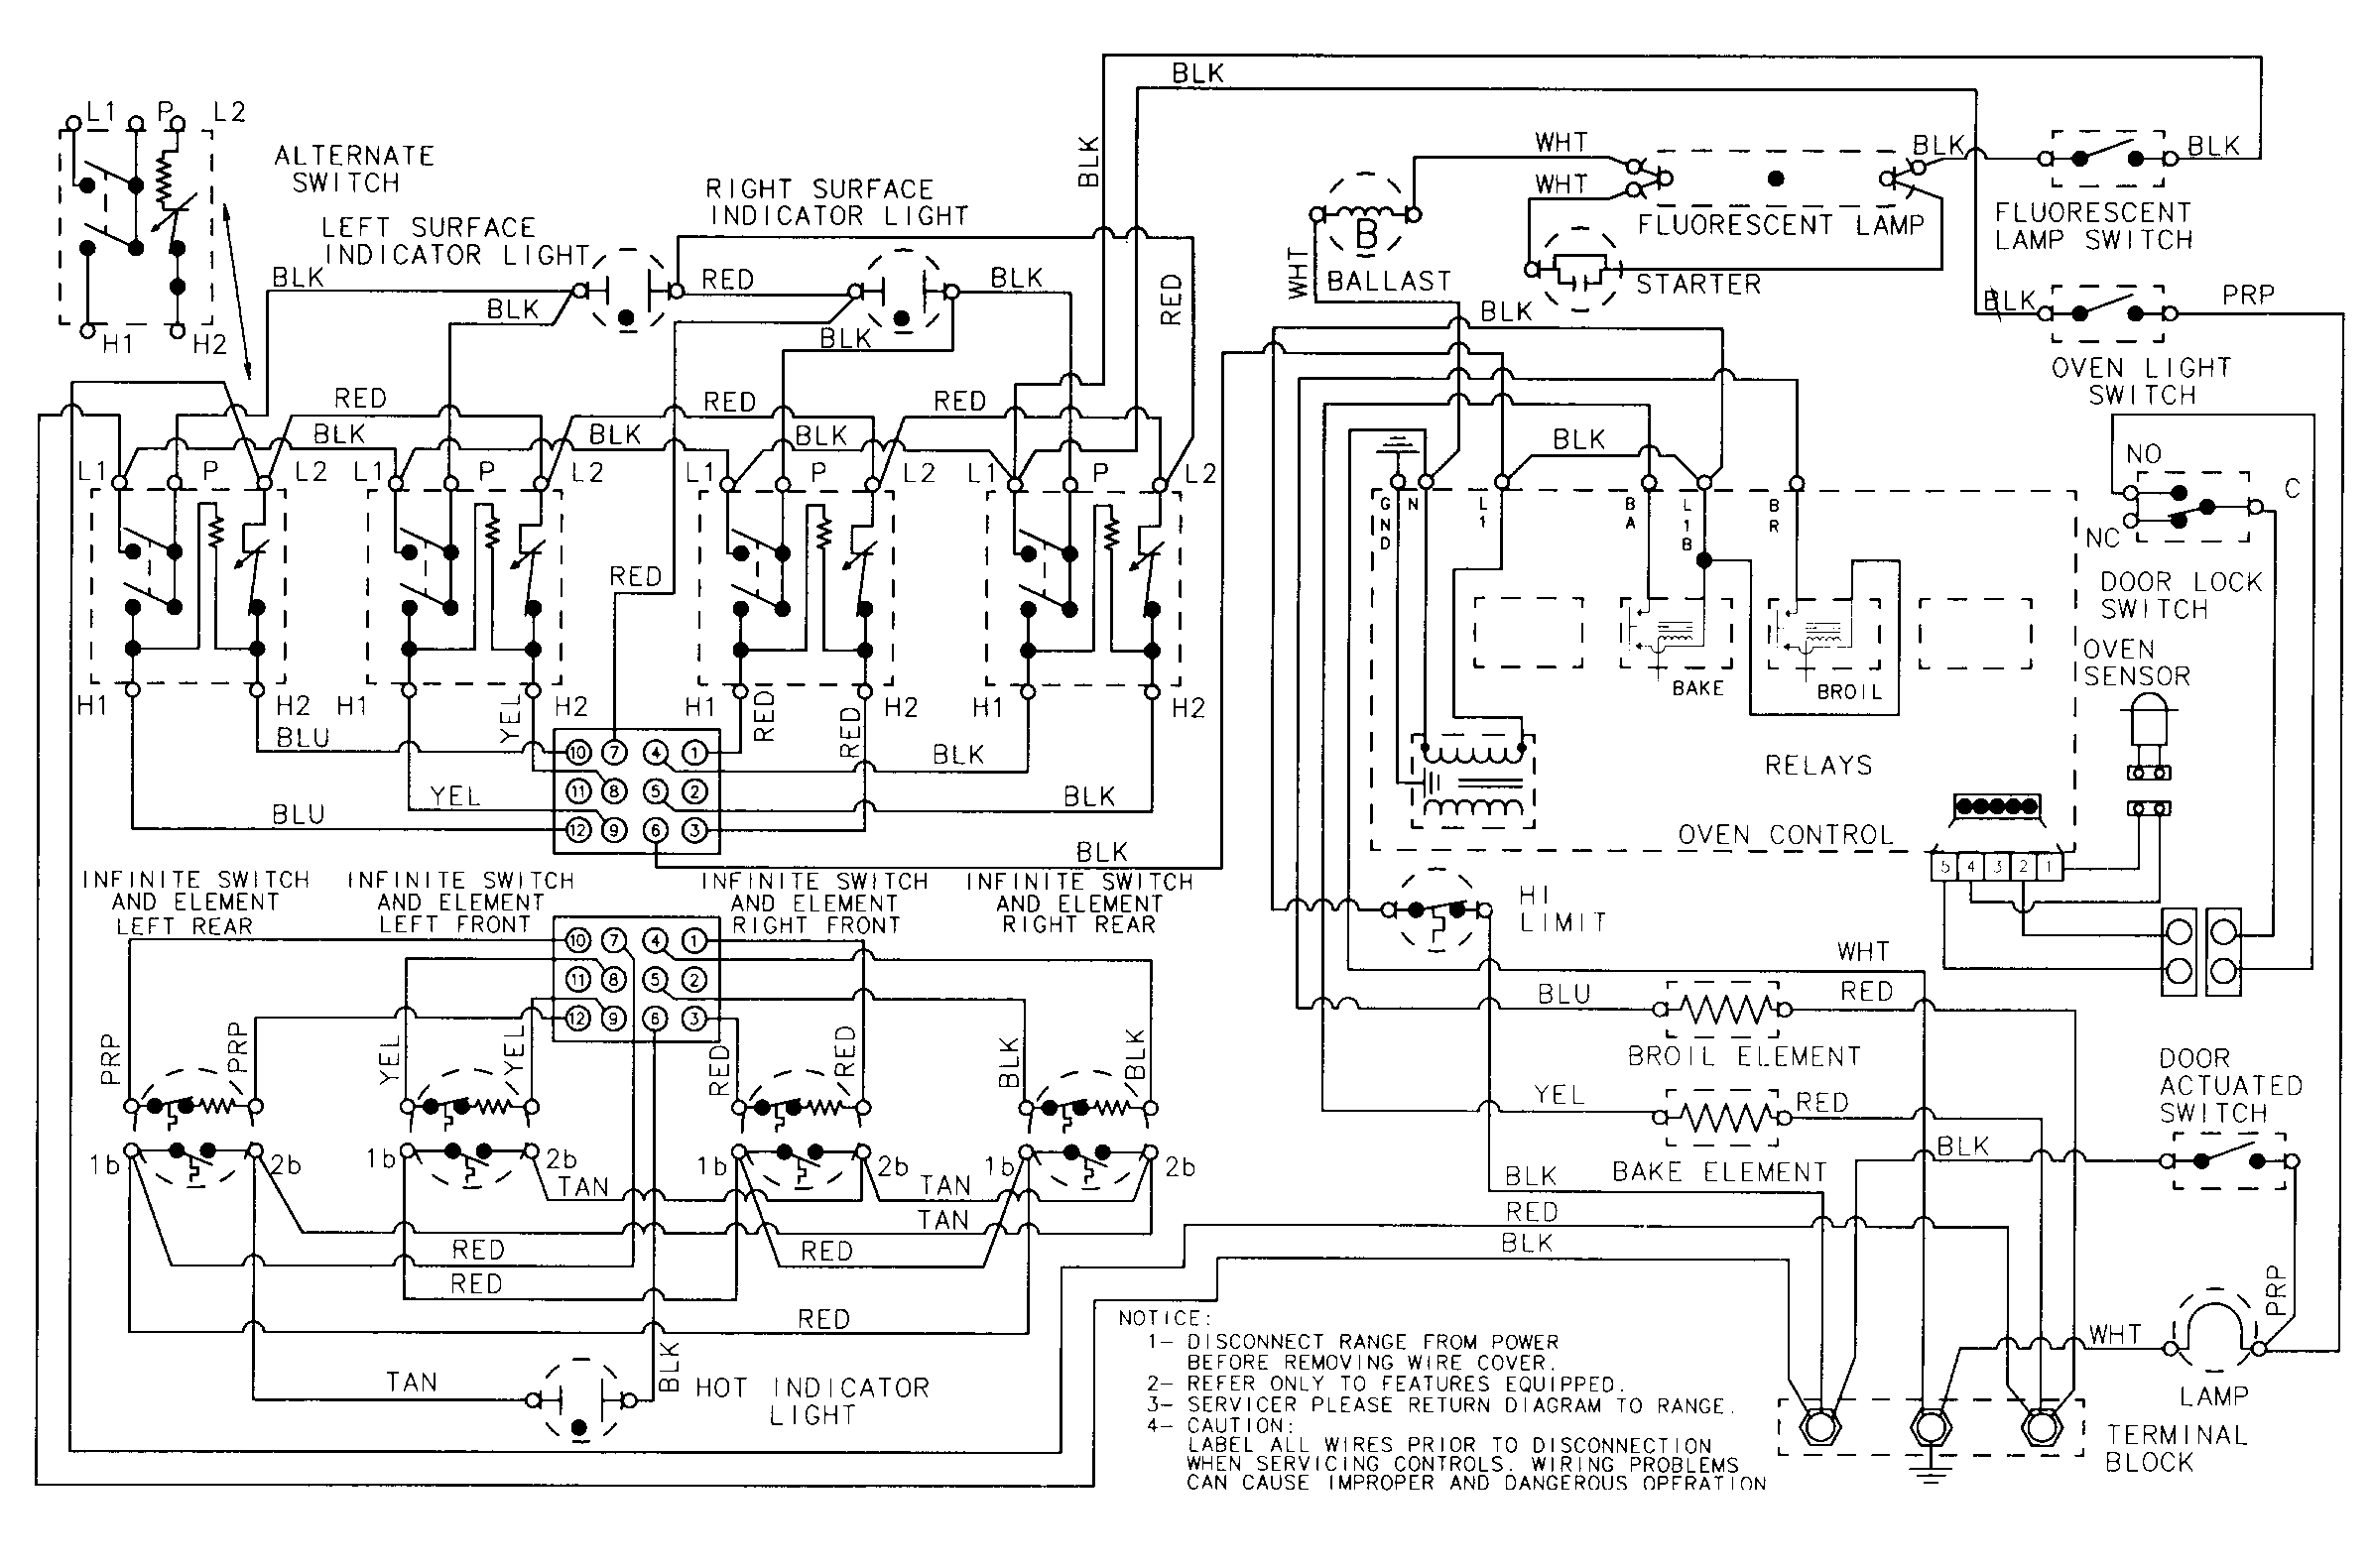 whirlpool dryer wiring diagram light switch to outlet image result for electrical with gas collection